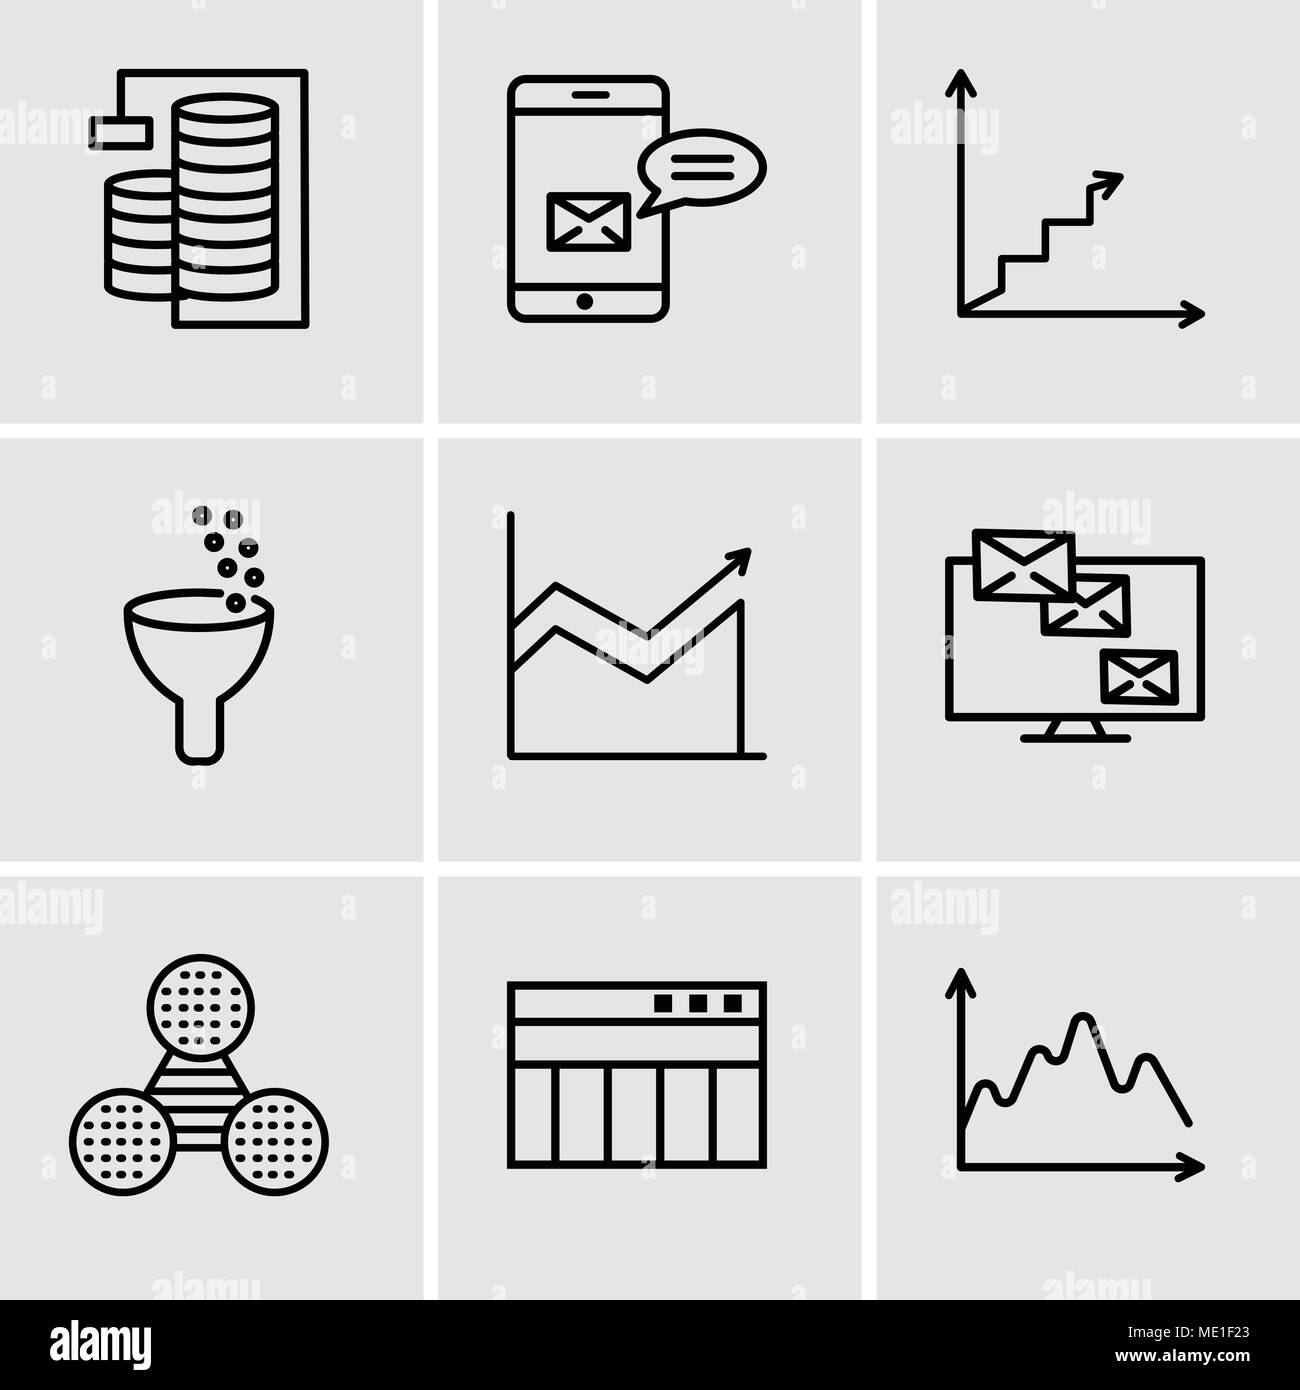 Set Of 9 simple editable icons such as Data, Table for data, Pie graphic comparison, Monitor analytic, Data analytics, Data analytics ascending, Data  - Stock Image